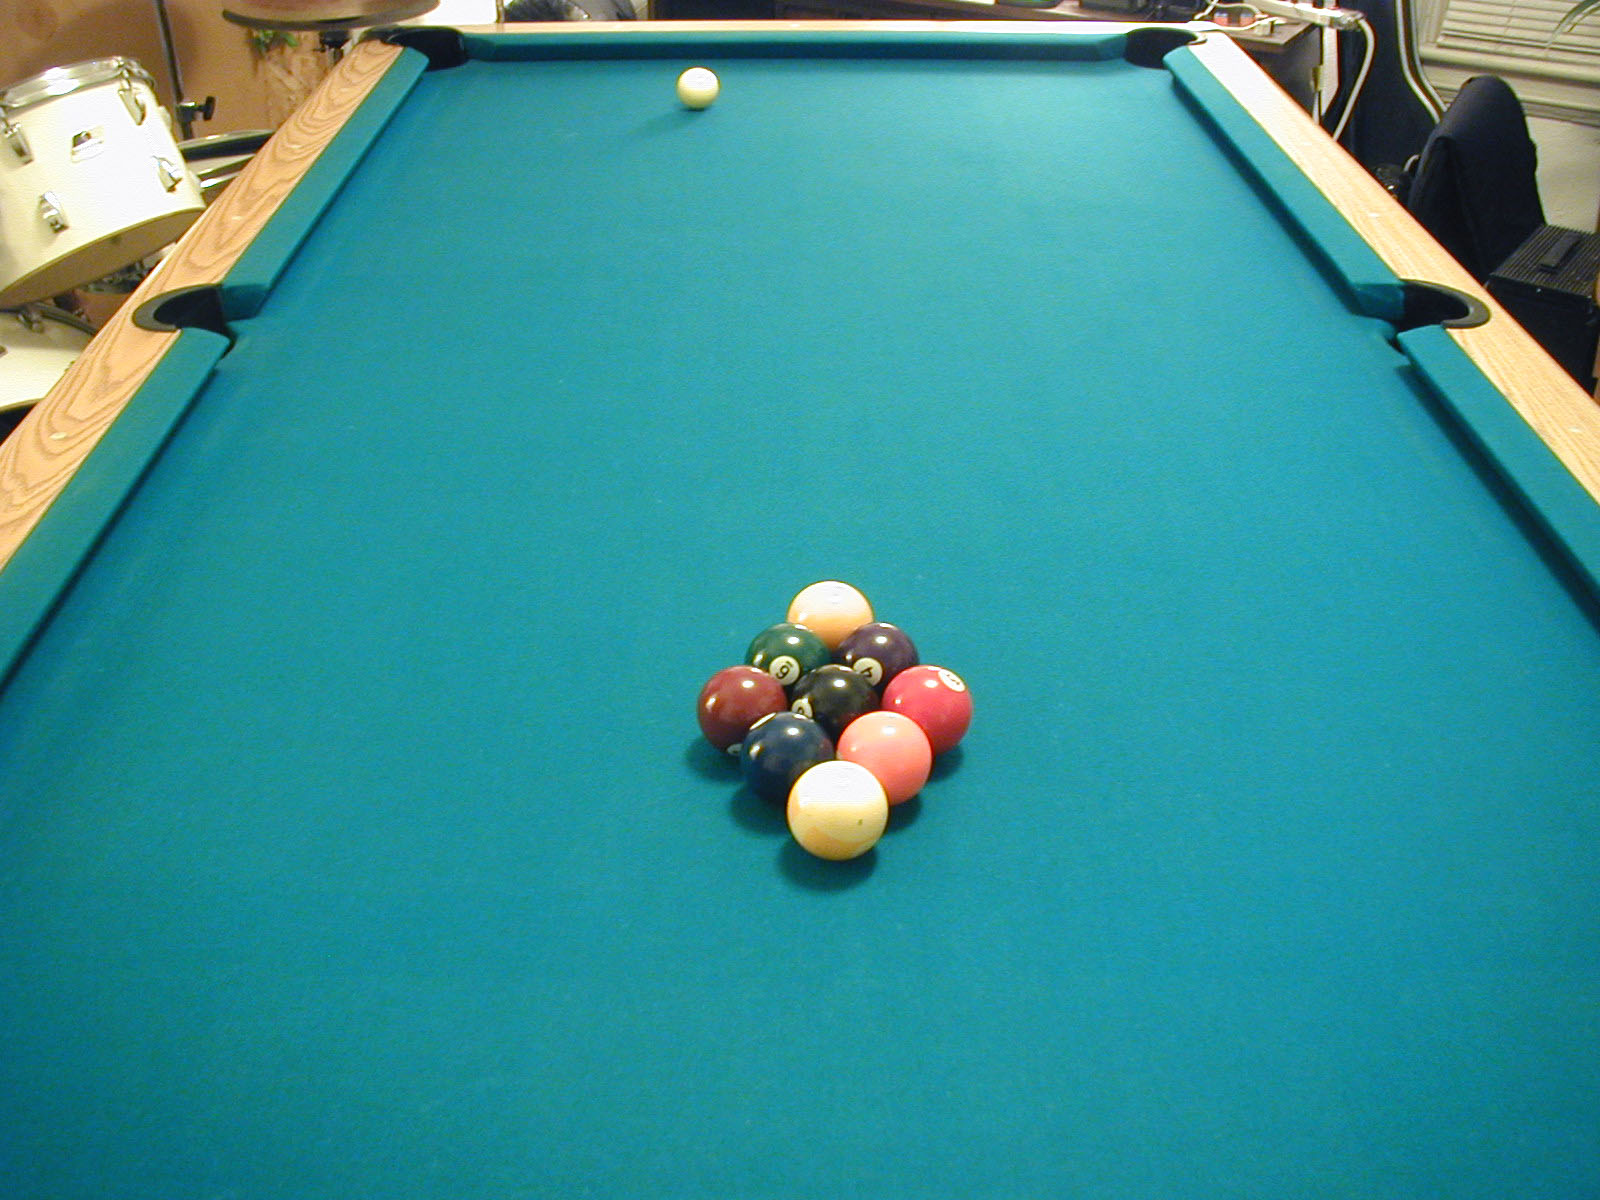 Billiards Forum - How many of you refelt your own table?